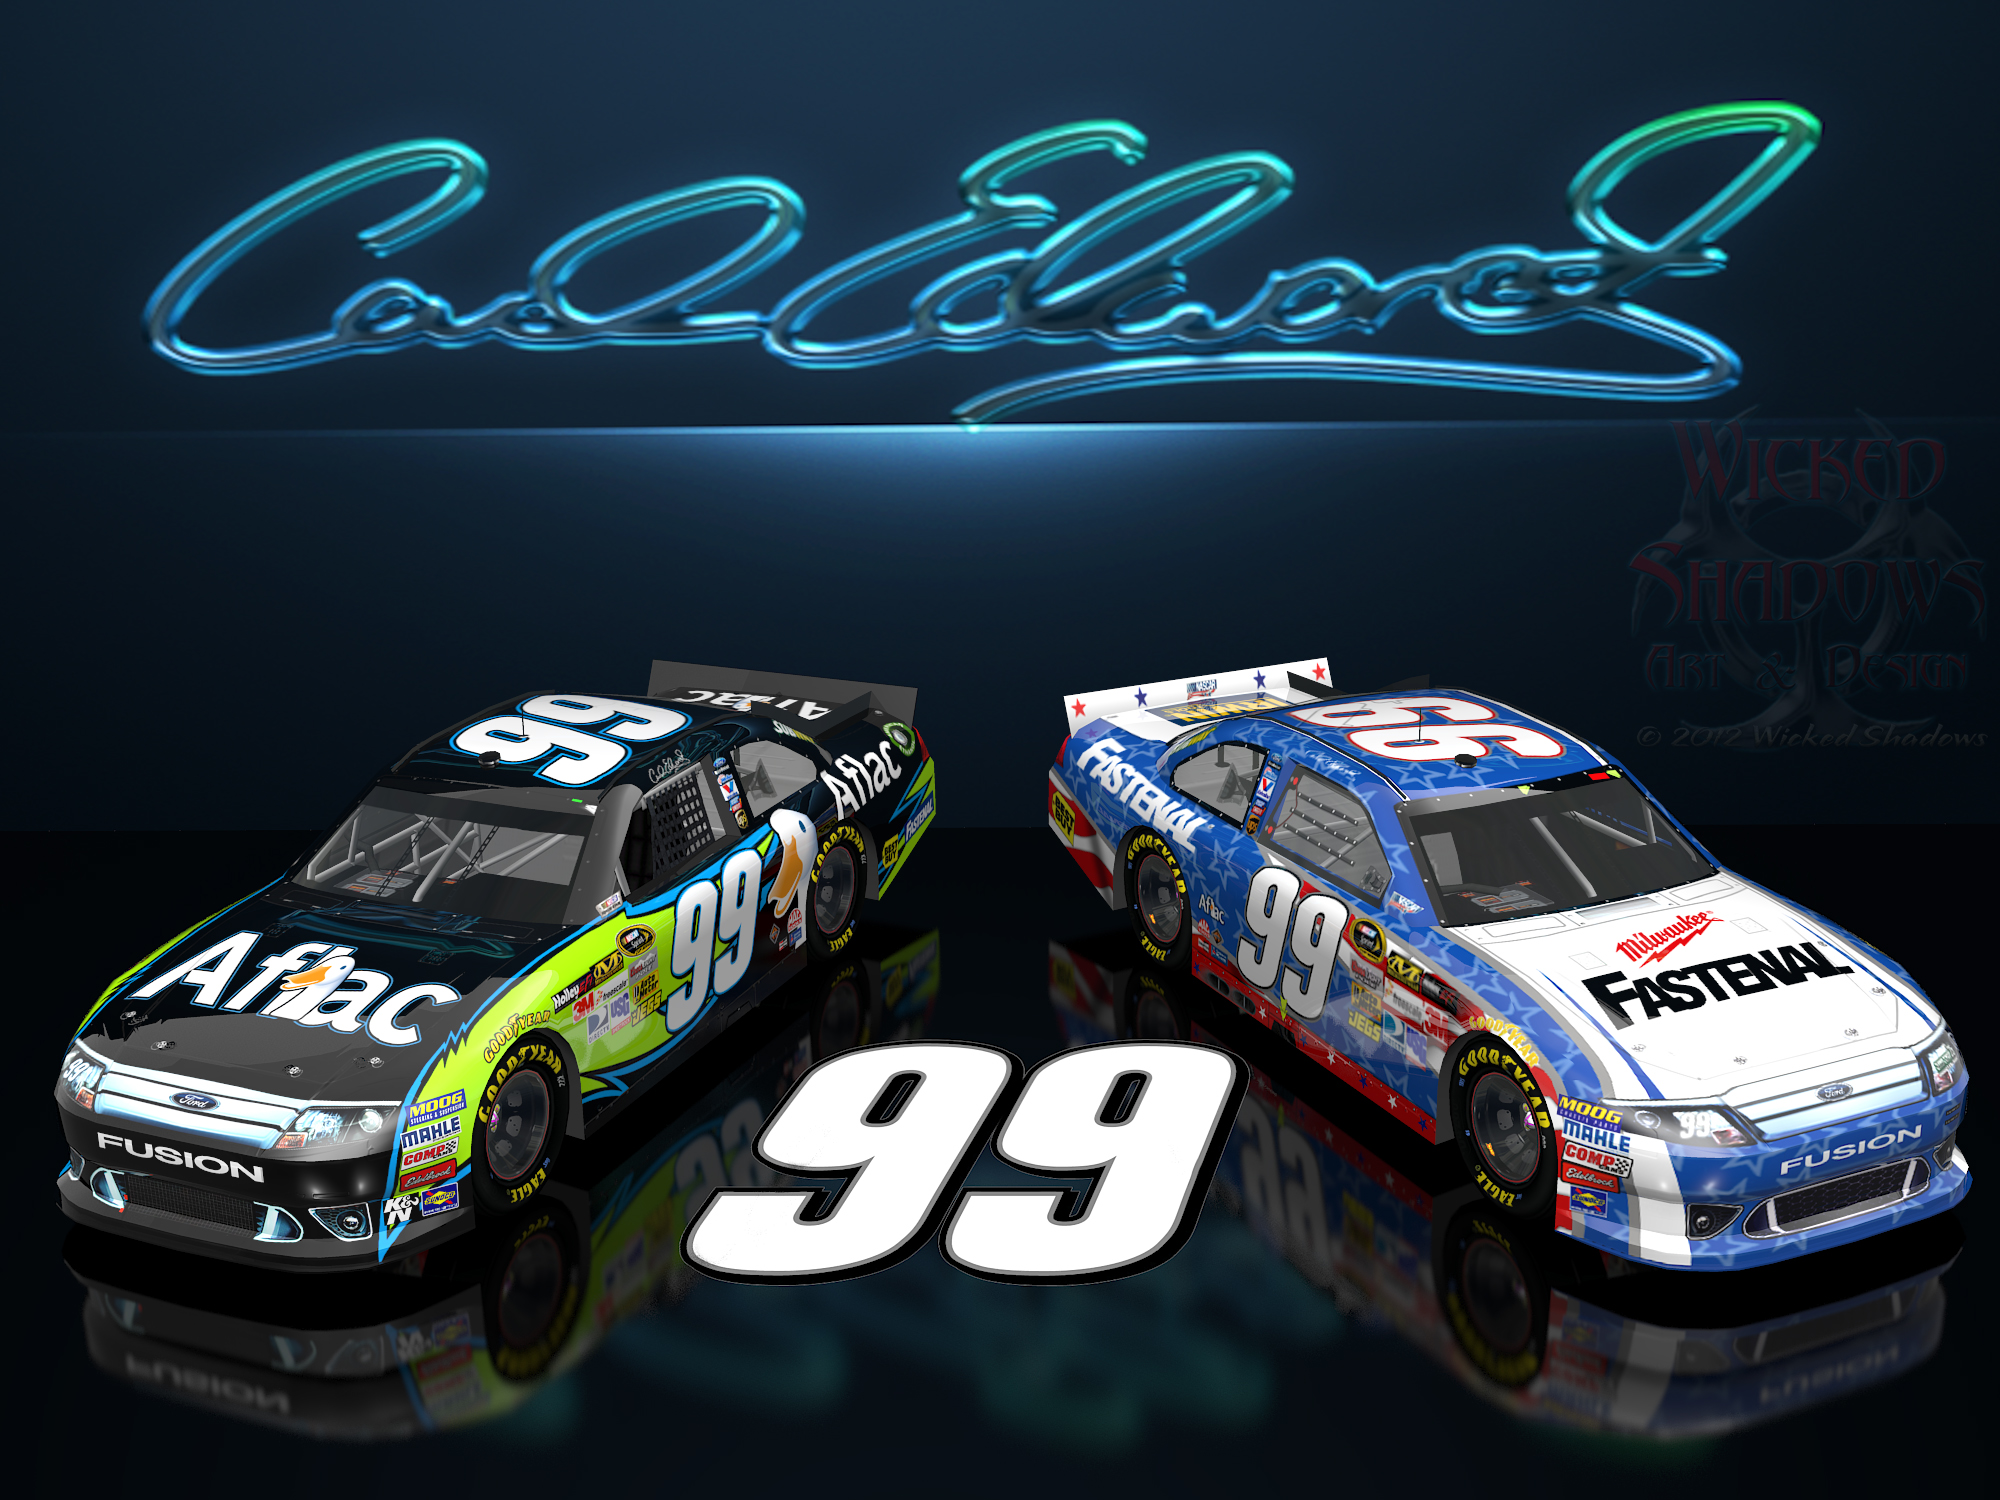 Wallpapers By Wicked Shadows: Carl Edwards Aflac Nascar United ...